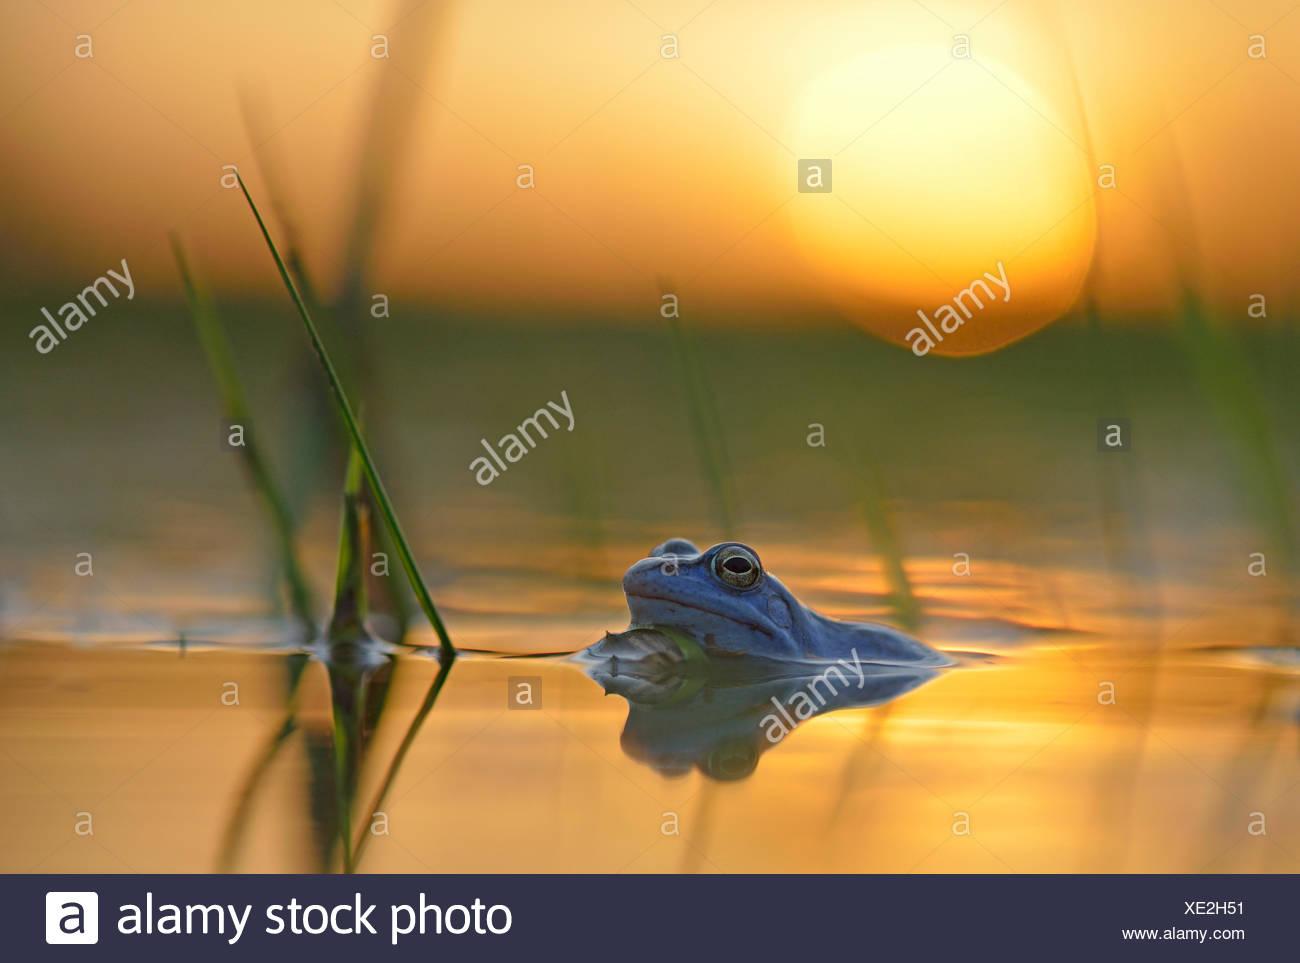 Moor frog (Rana arvalis), blue coloured male during mating season, in spawning waters, sunset, Elbe, Saxony-Anhalt, Germany - Stock Image